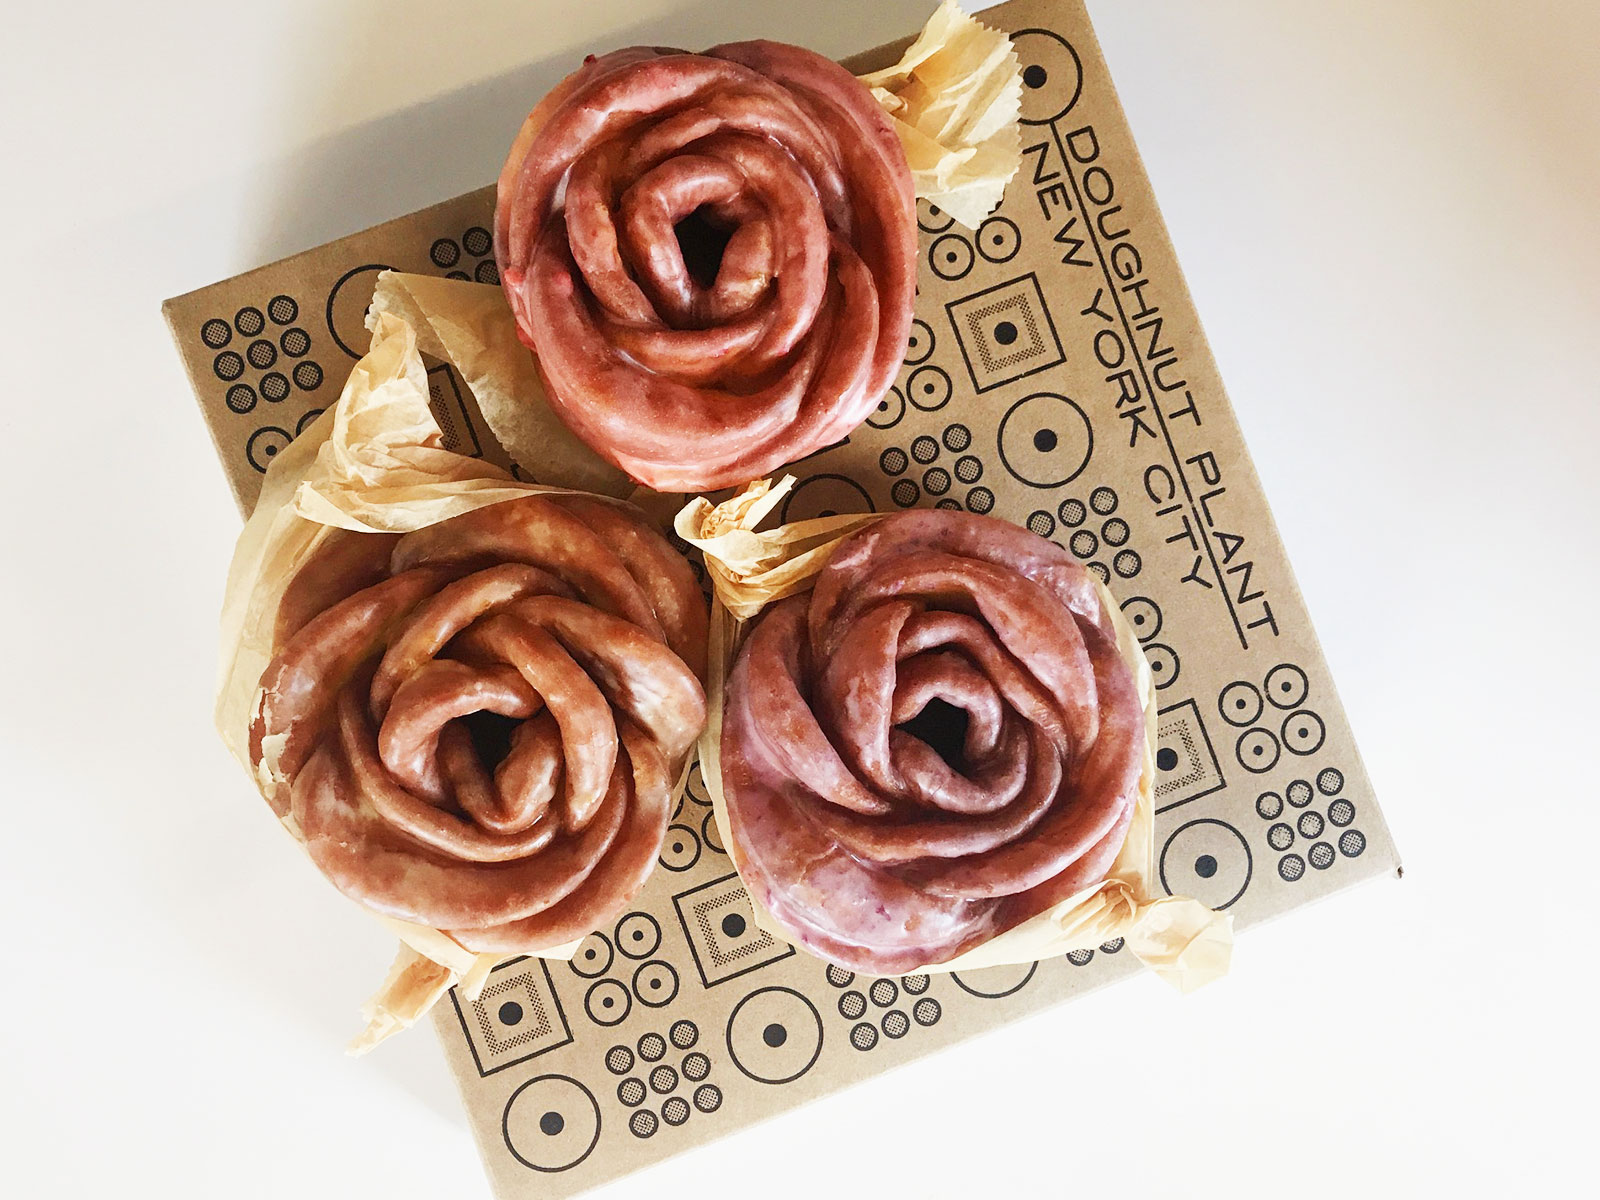 rose shaped foods doughnut